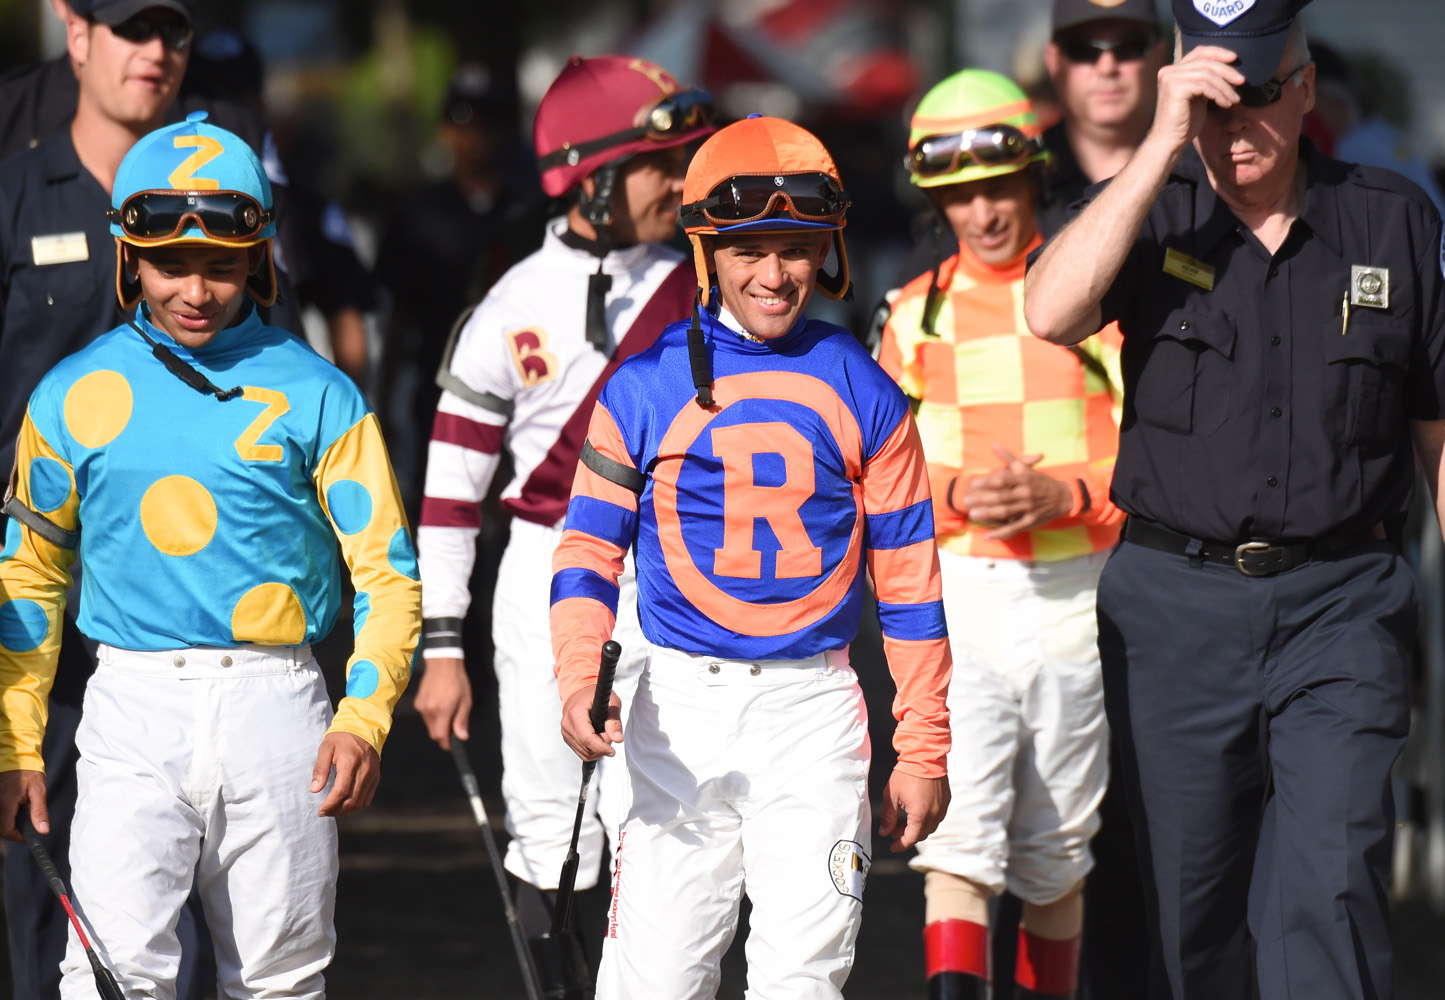 Javier Castellano entering the Saratoga paddock with the rest of the jockey colony in 2019 (Bob Mayberger)